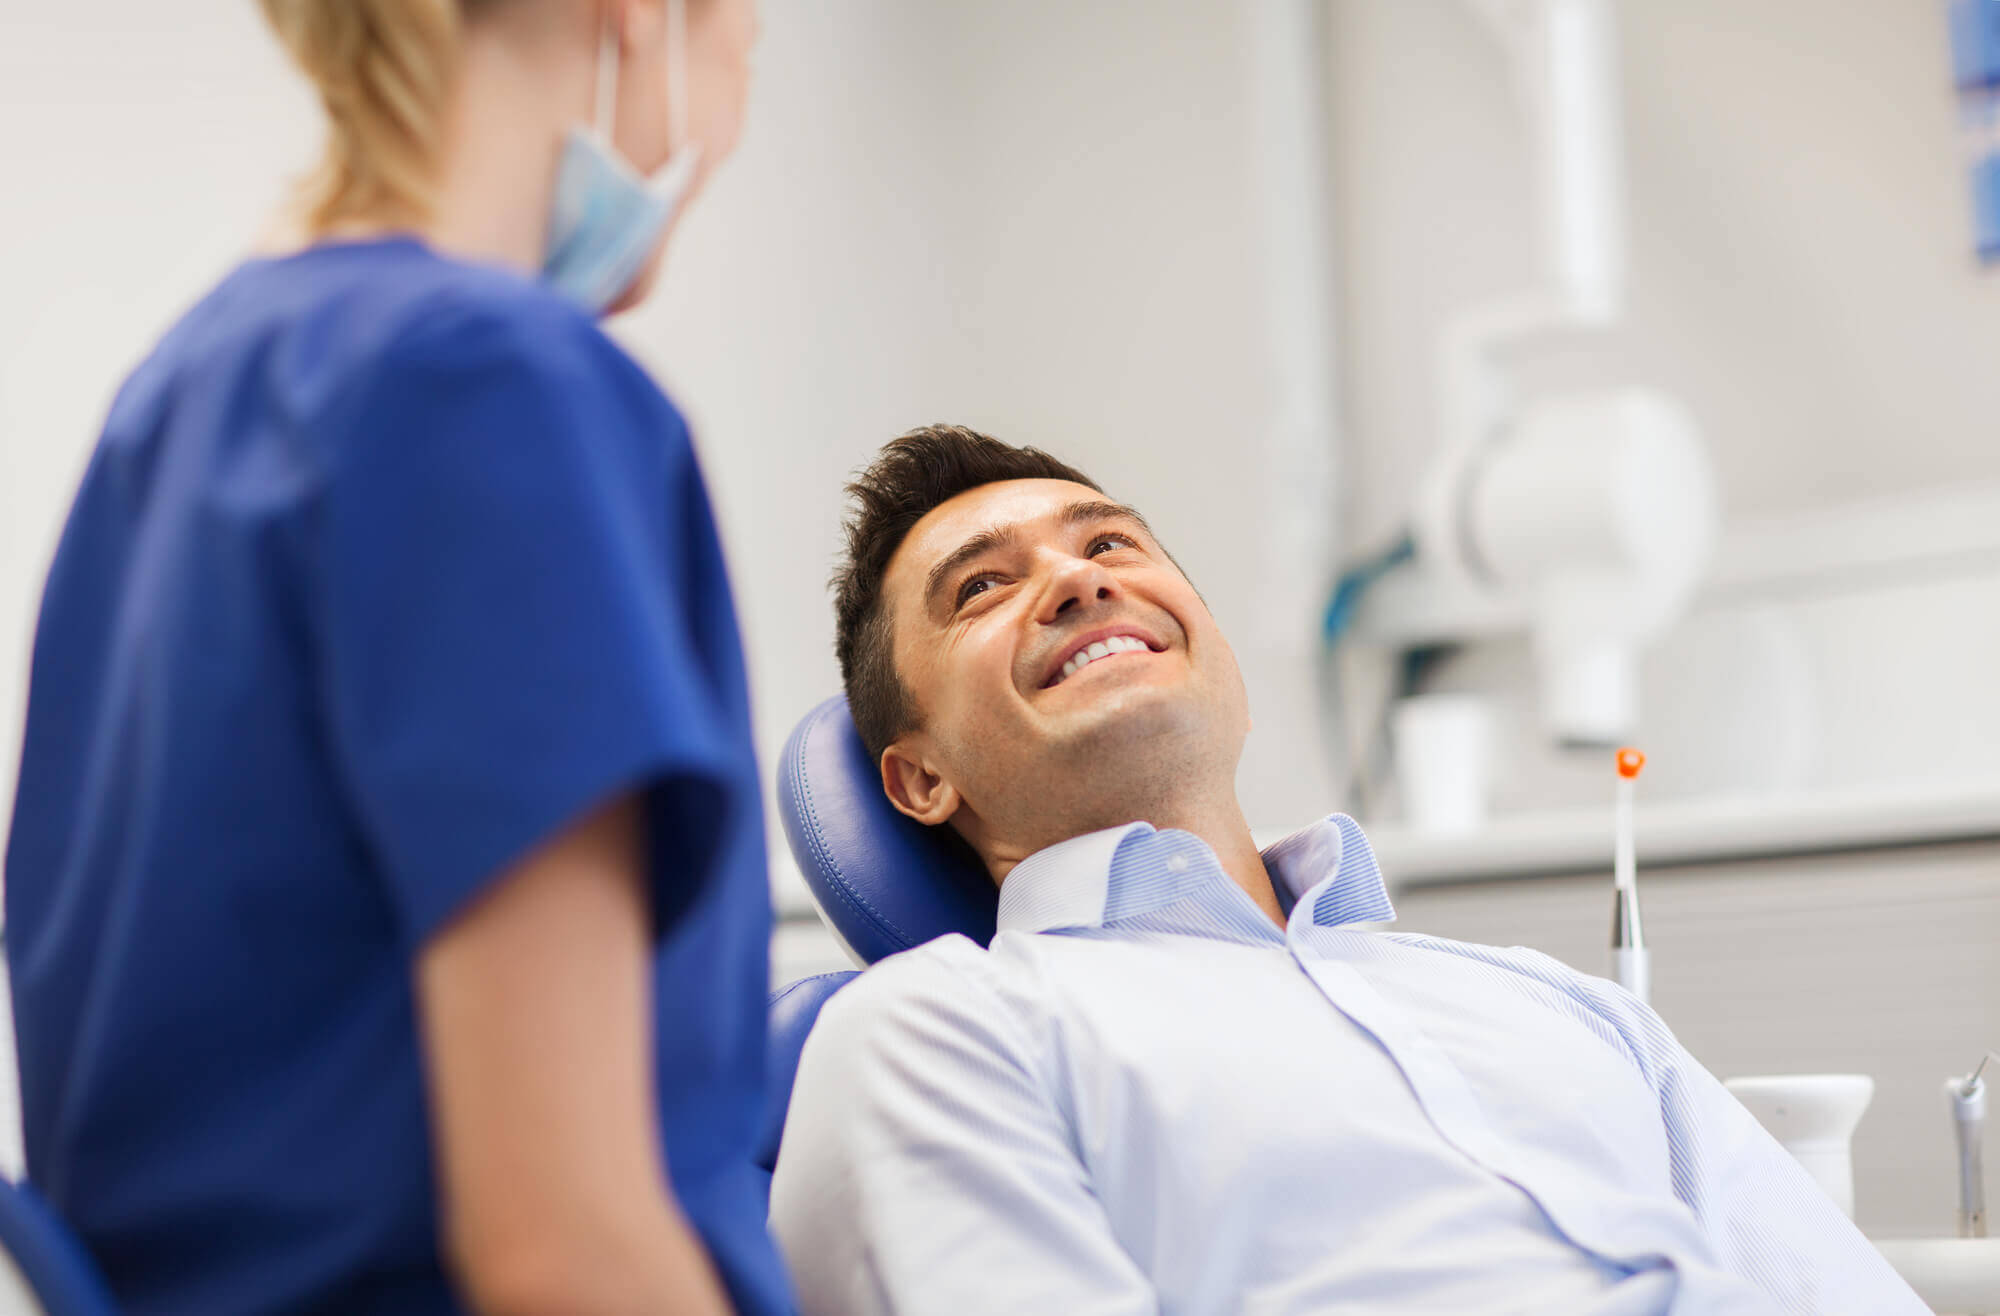 who offers the best periodontist north miami?